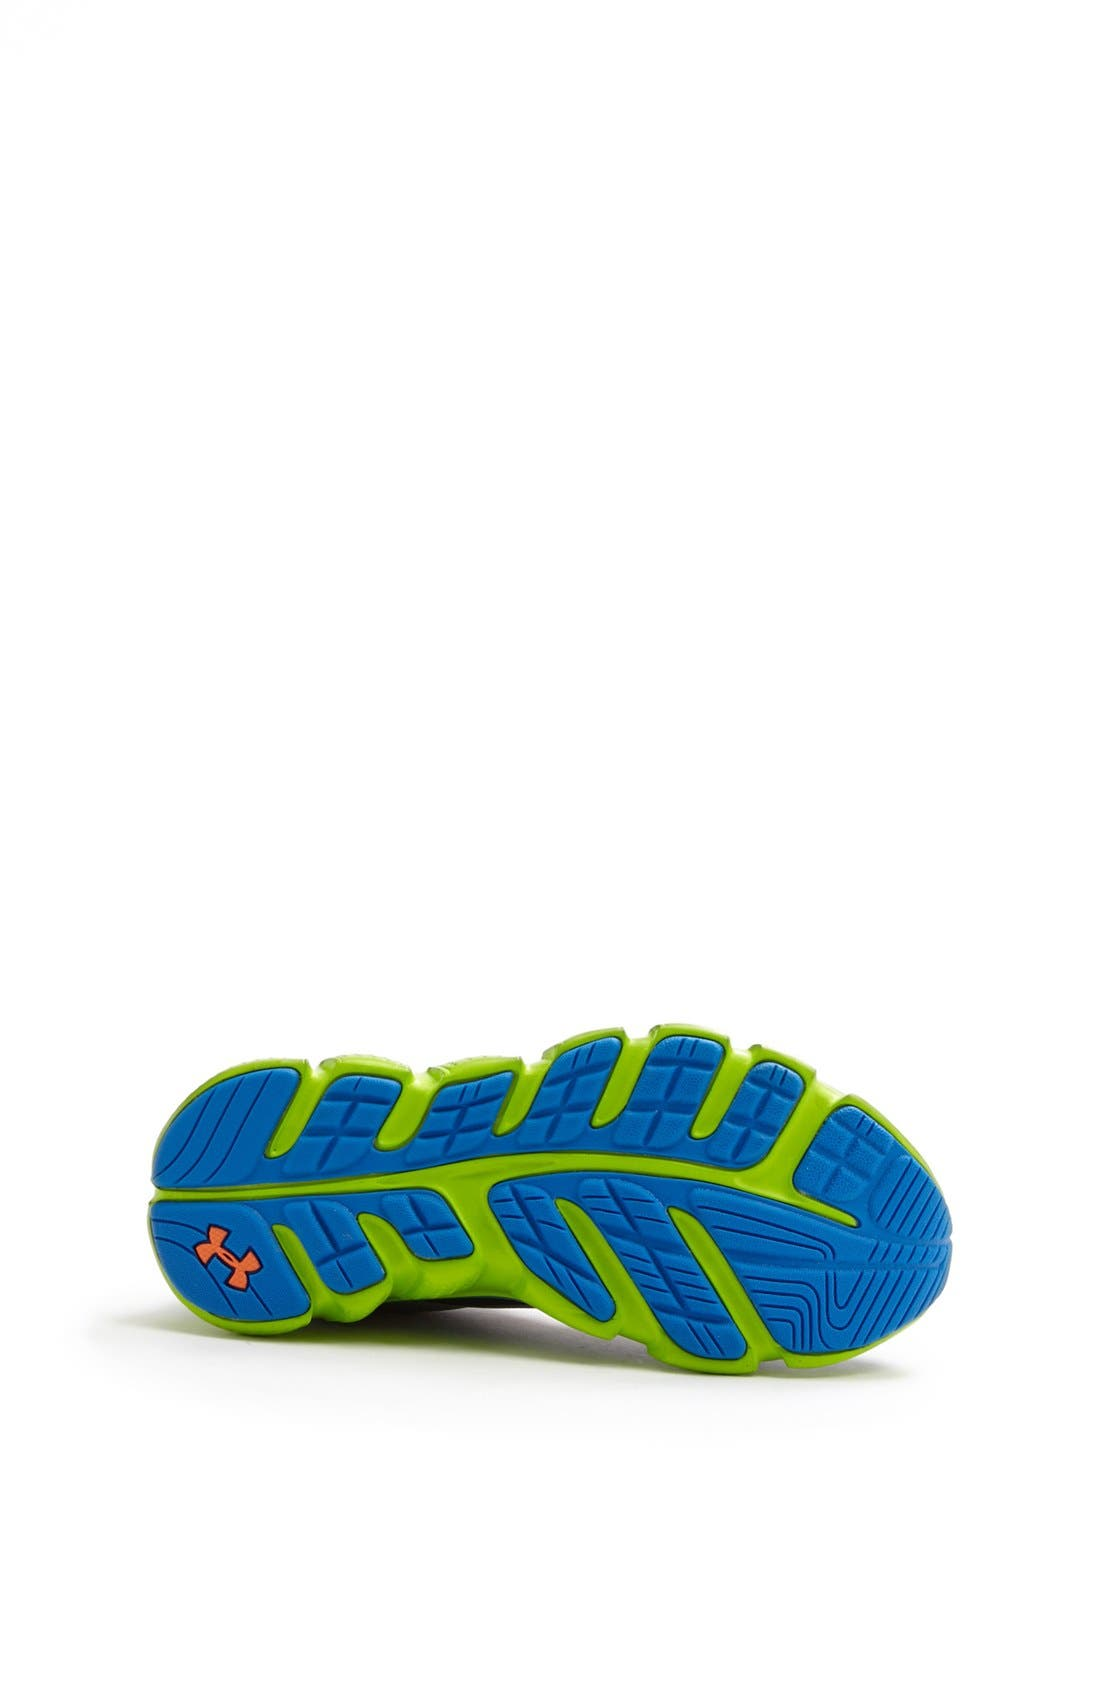 Alternate Image 4  - Under Armour 'Micro G® Pulse' Training Shoe (Toddler, Little Kid & Big Kid)